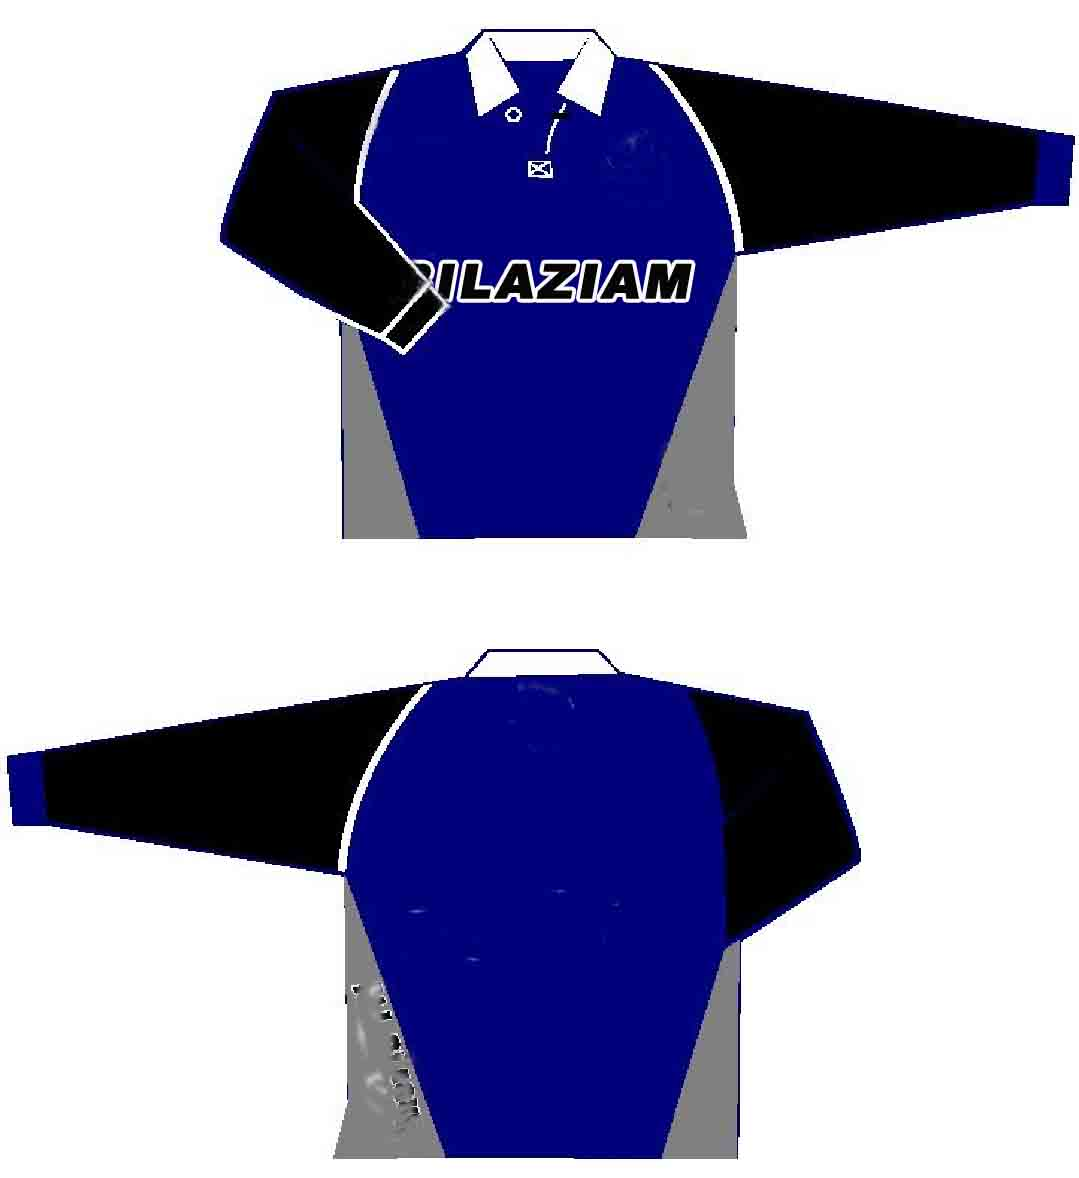 Buy Pakistani RUGBY SHIRTS Online From BilaziamIndustries At